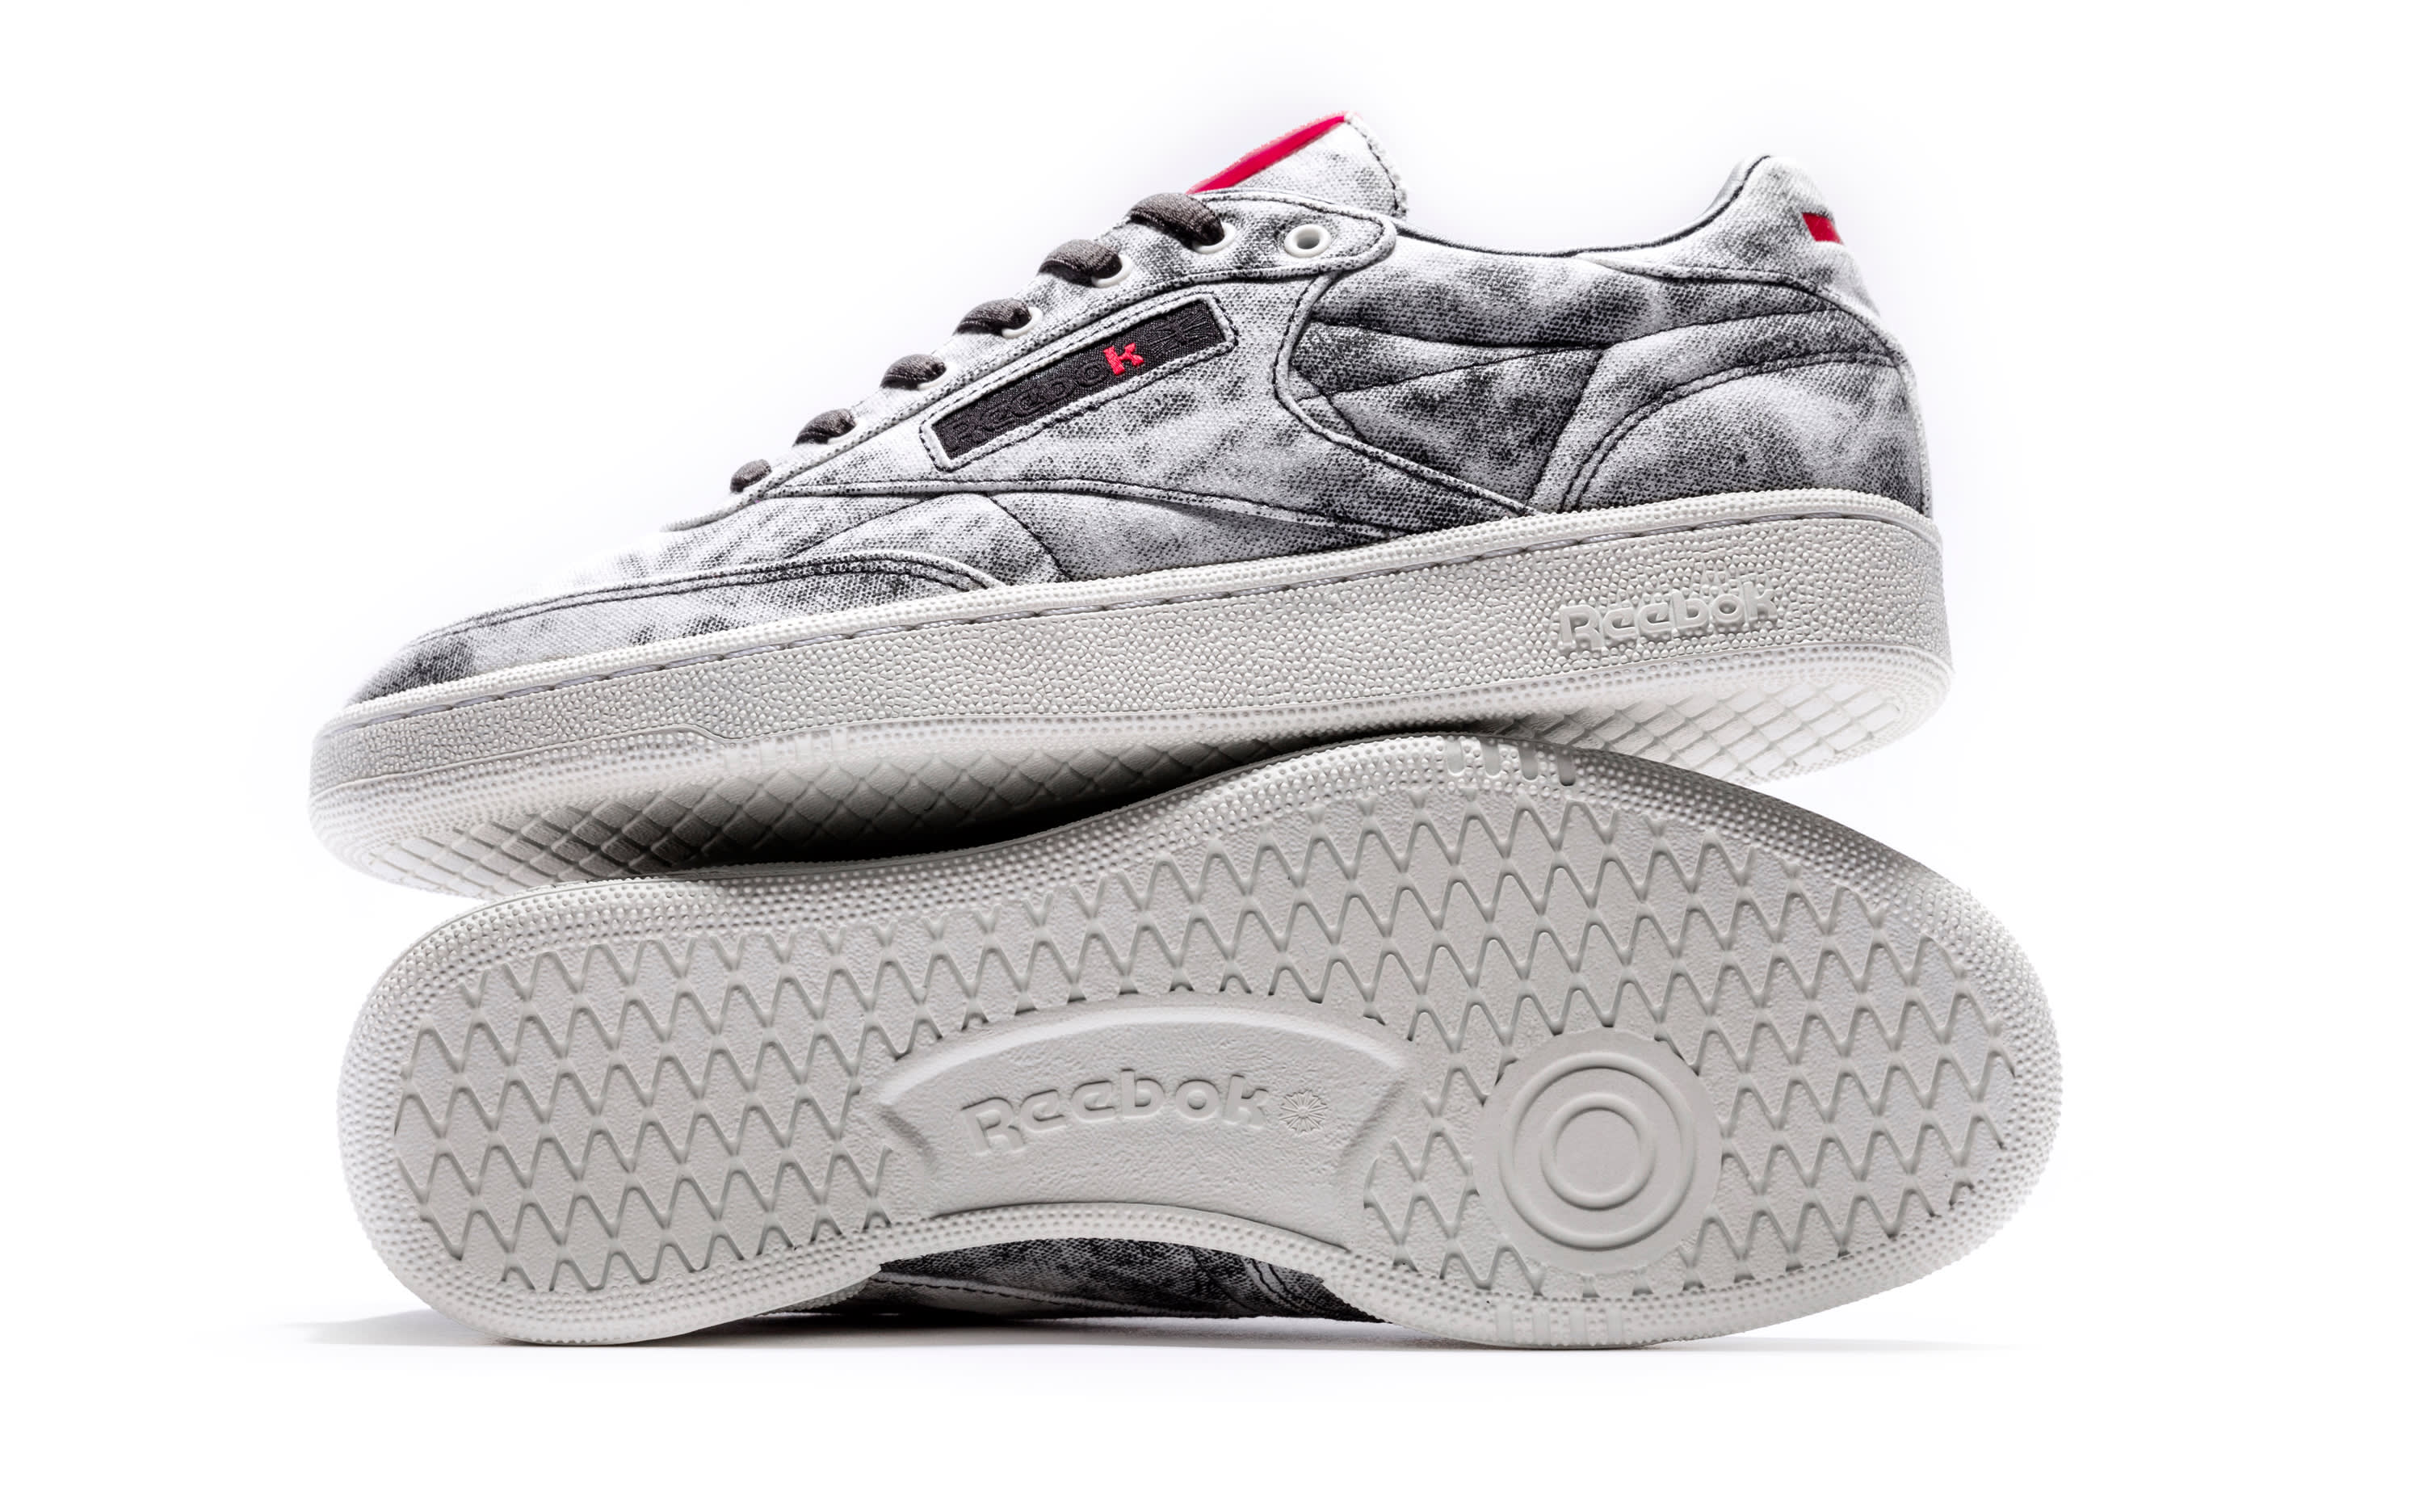 reebok club c shoes cheap   OFF67% The Largest Catalog Discounts 8528f1544